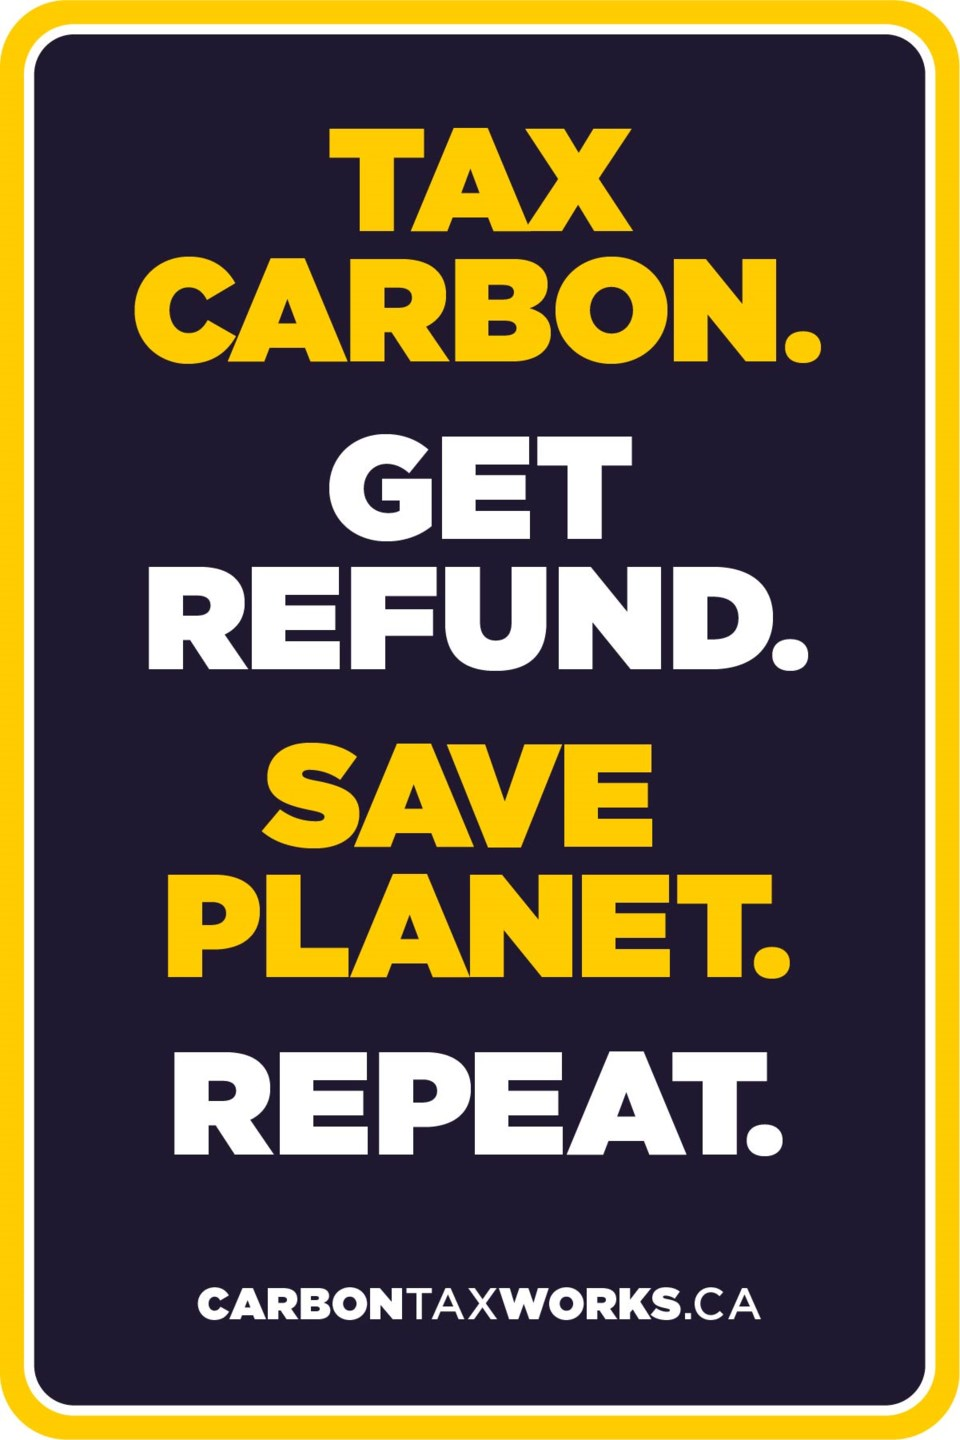 2019 09 07 Tax-Carbon-Get-Refund